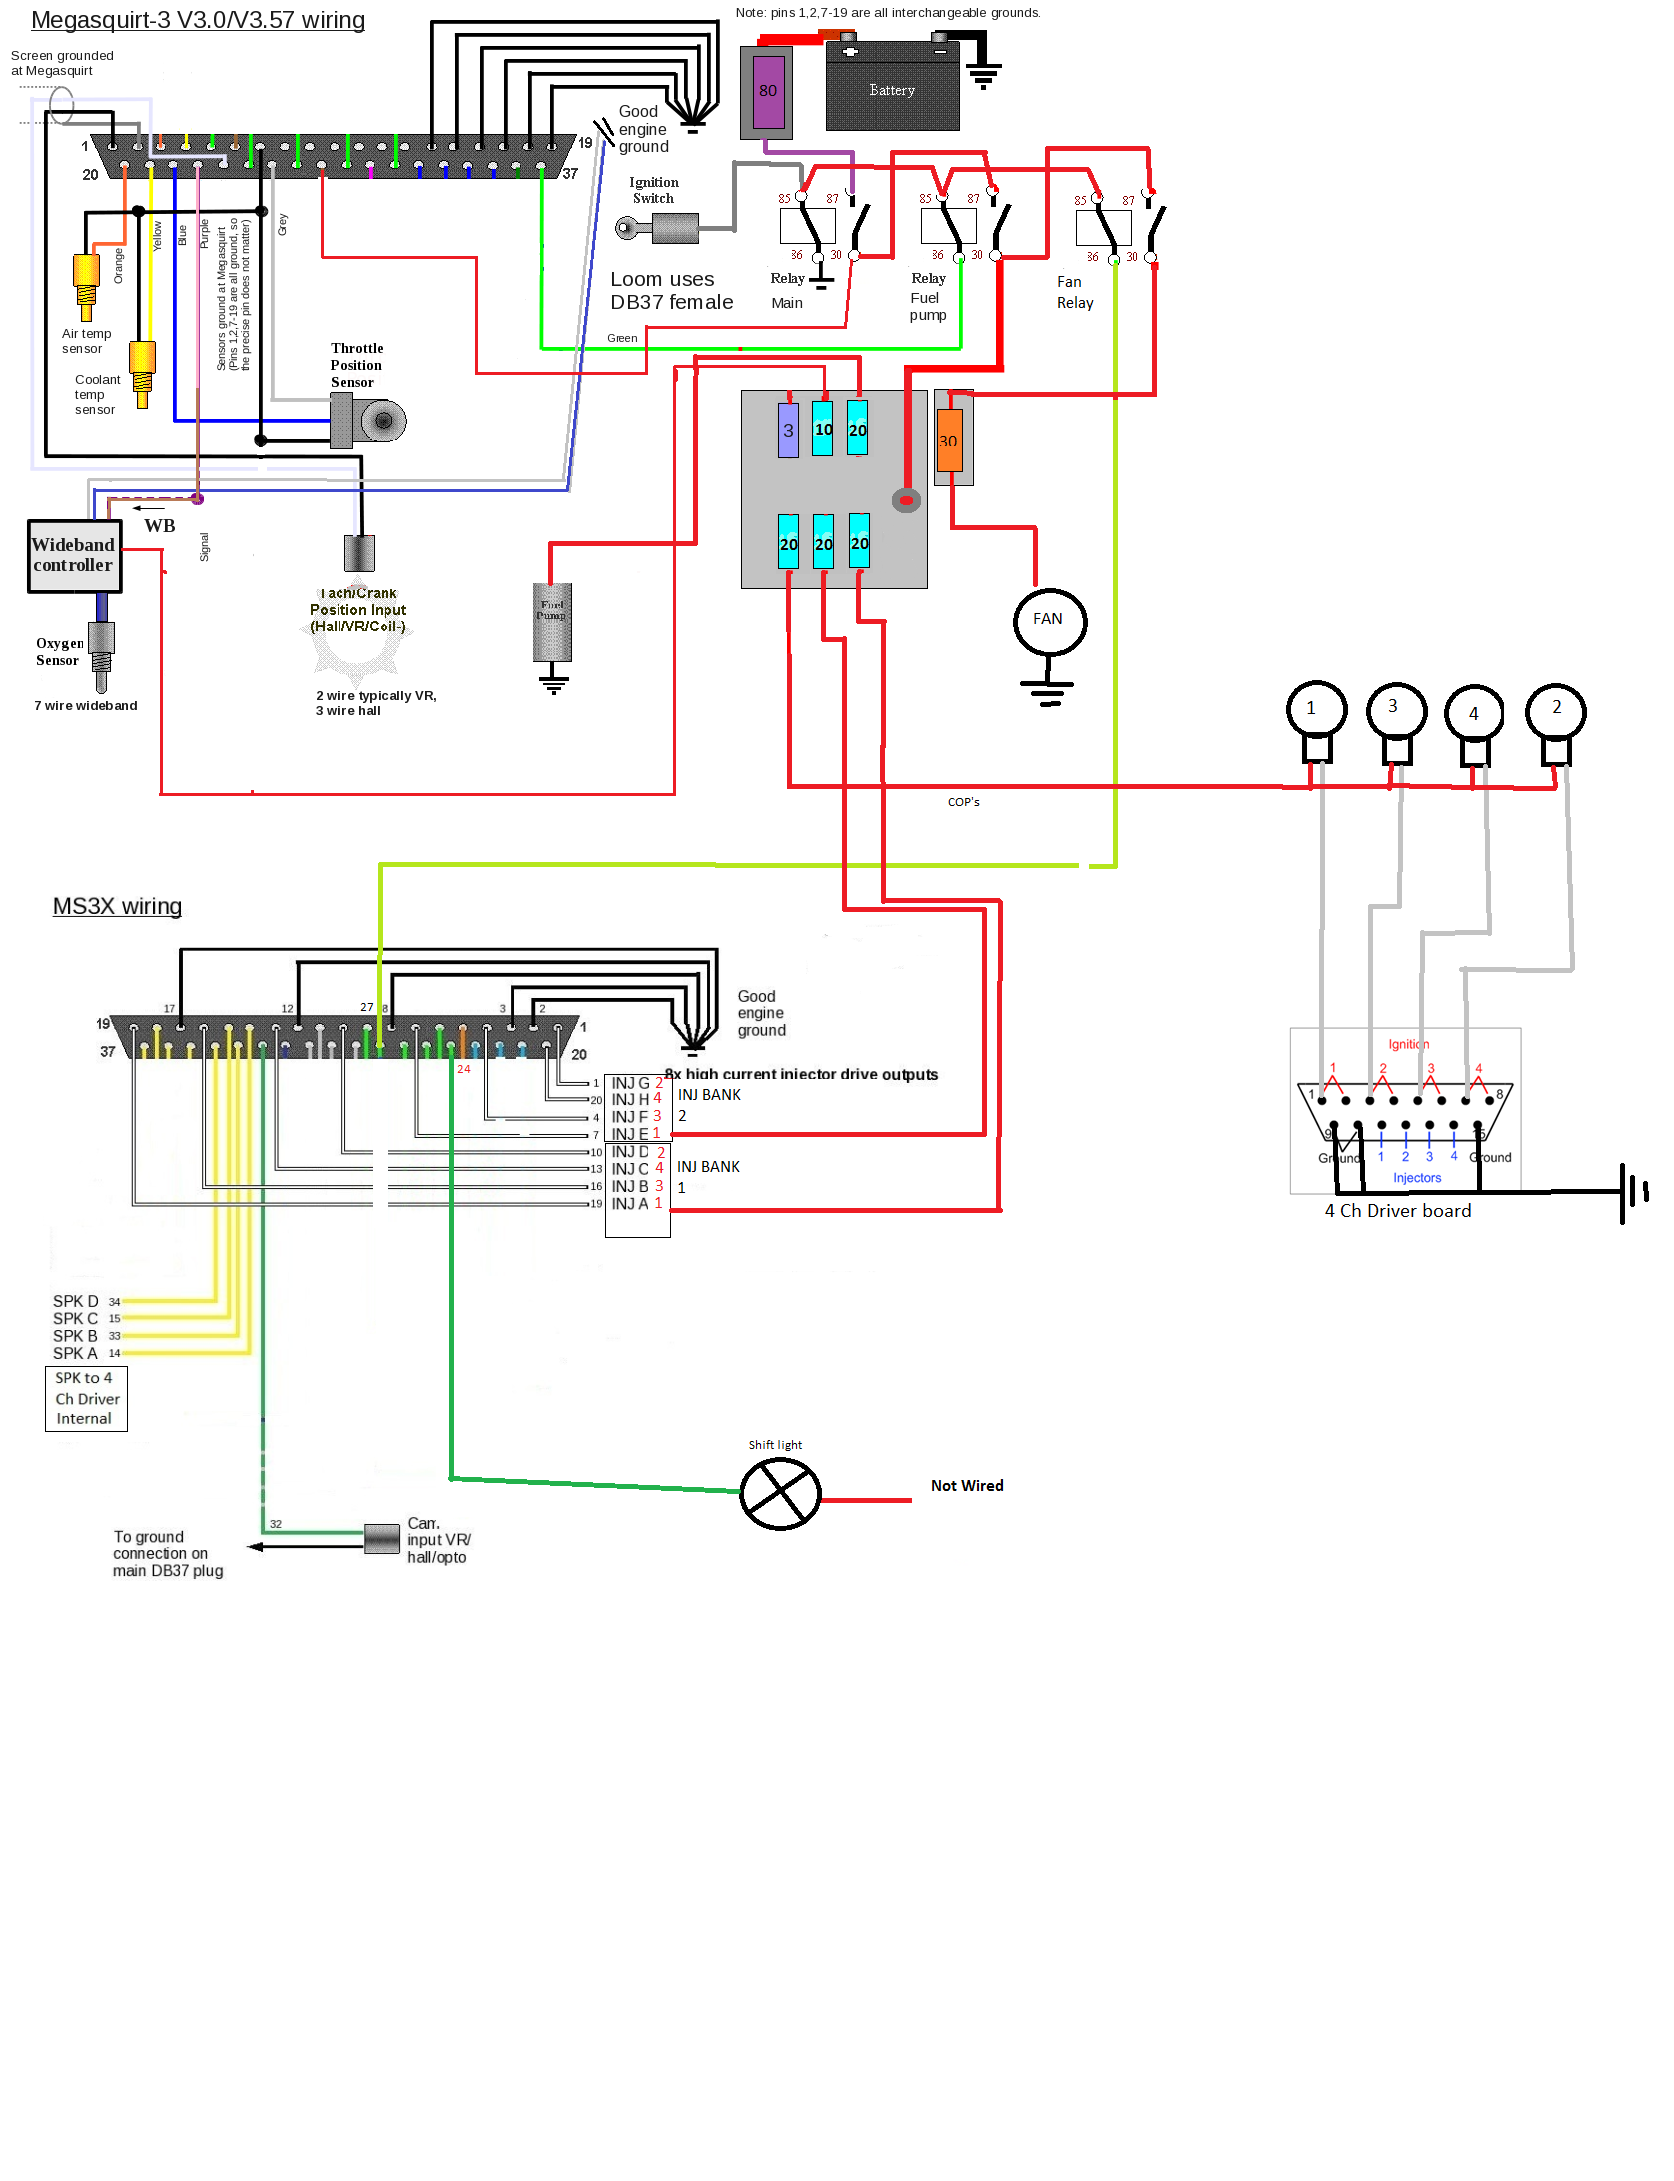 MS-wiring-2.png